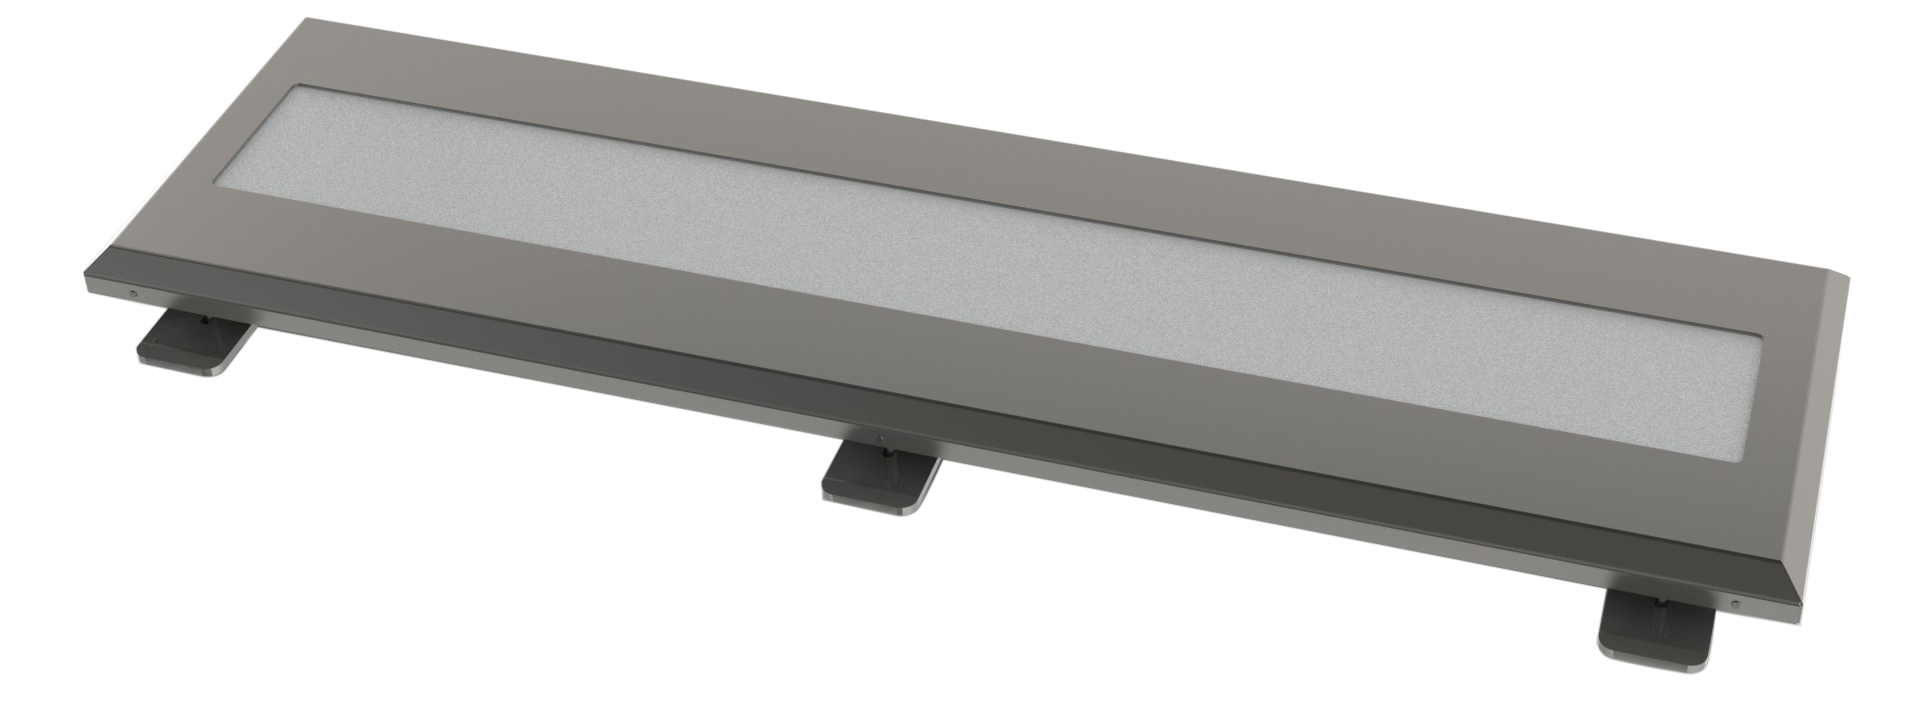 The Epsilon Light Unit Consists Of A 316 Grade Stainless Steel Surround Providing Tough Yet Stylish Protection For LED Panel Housed Inside